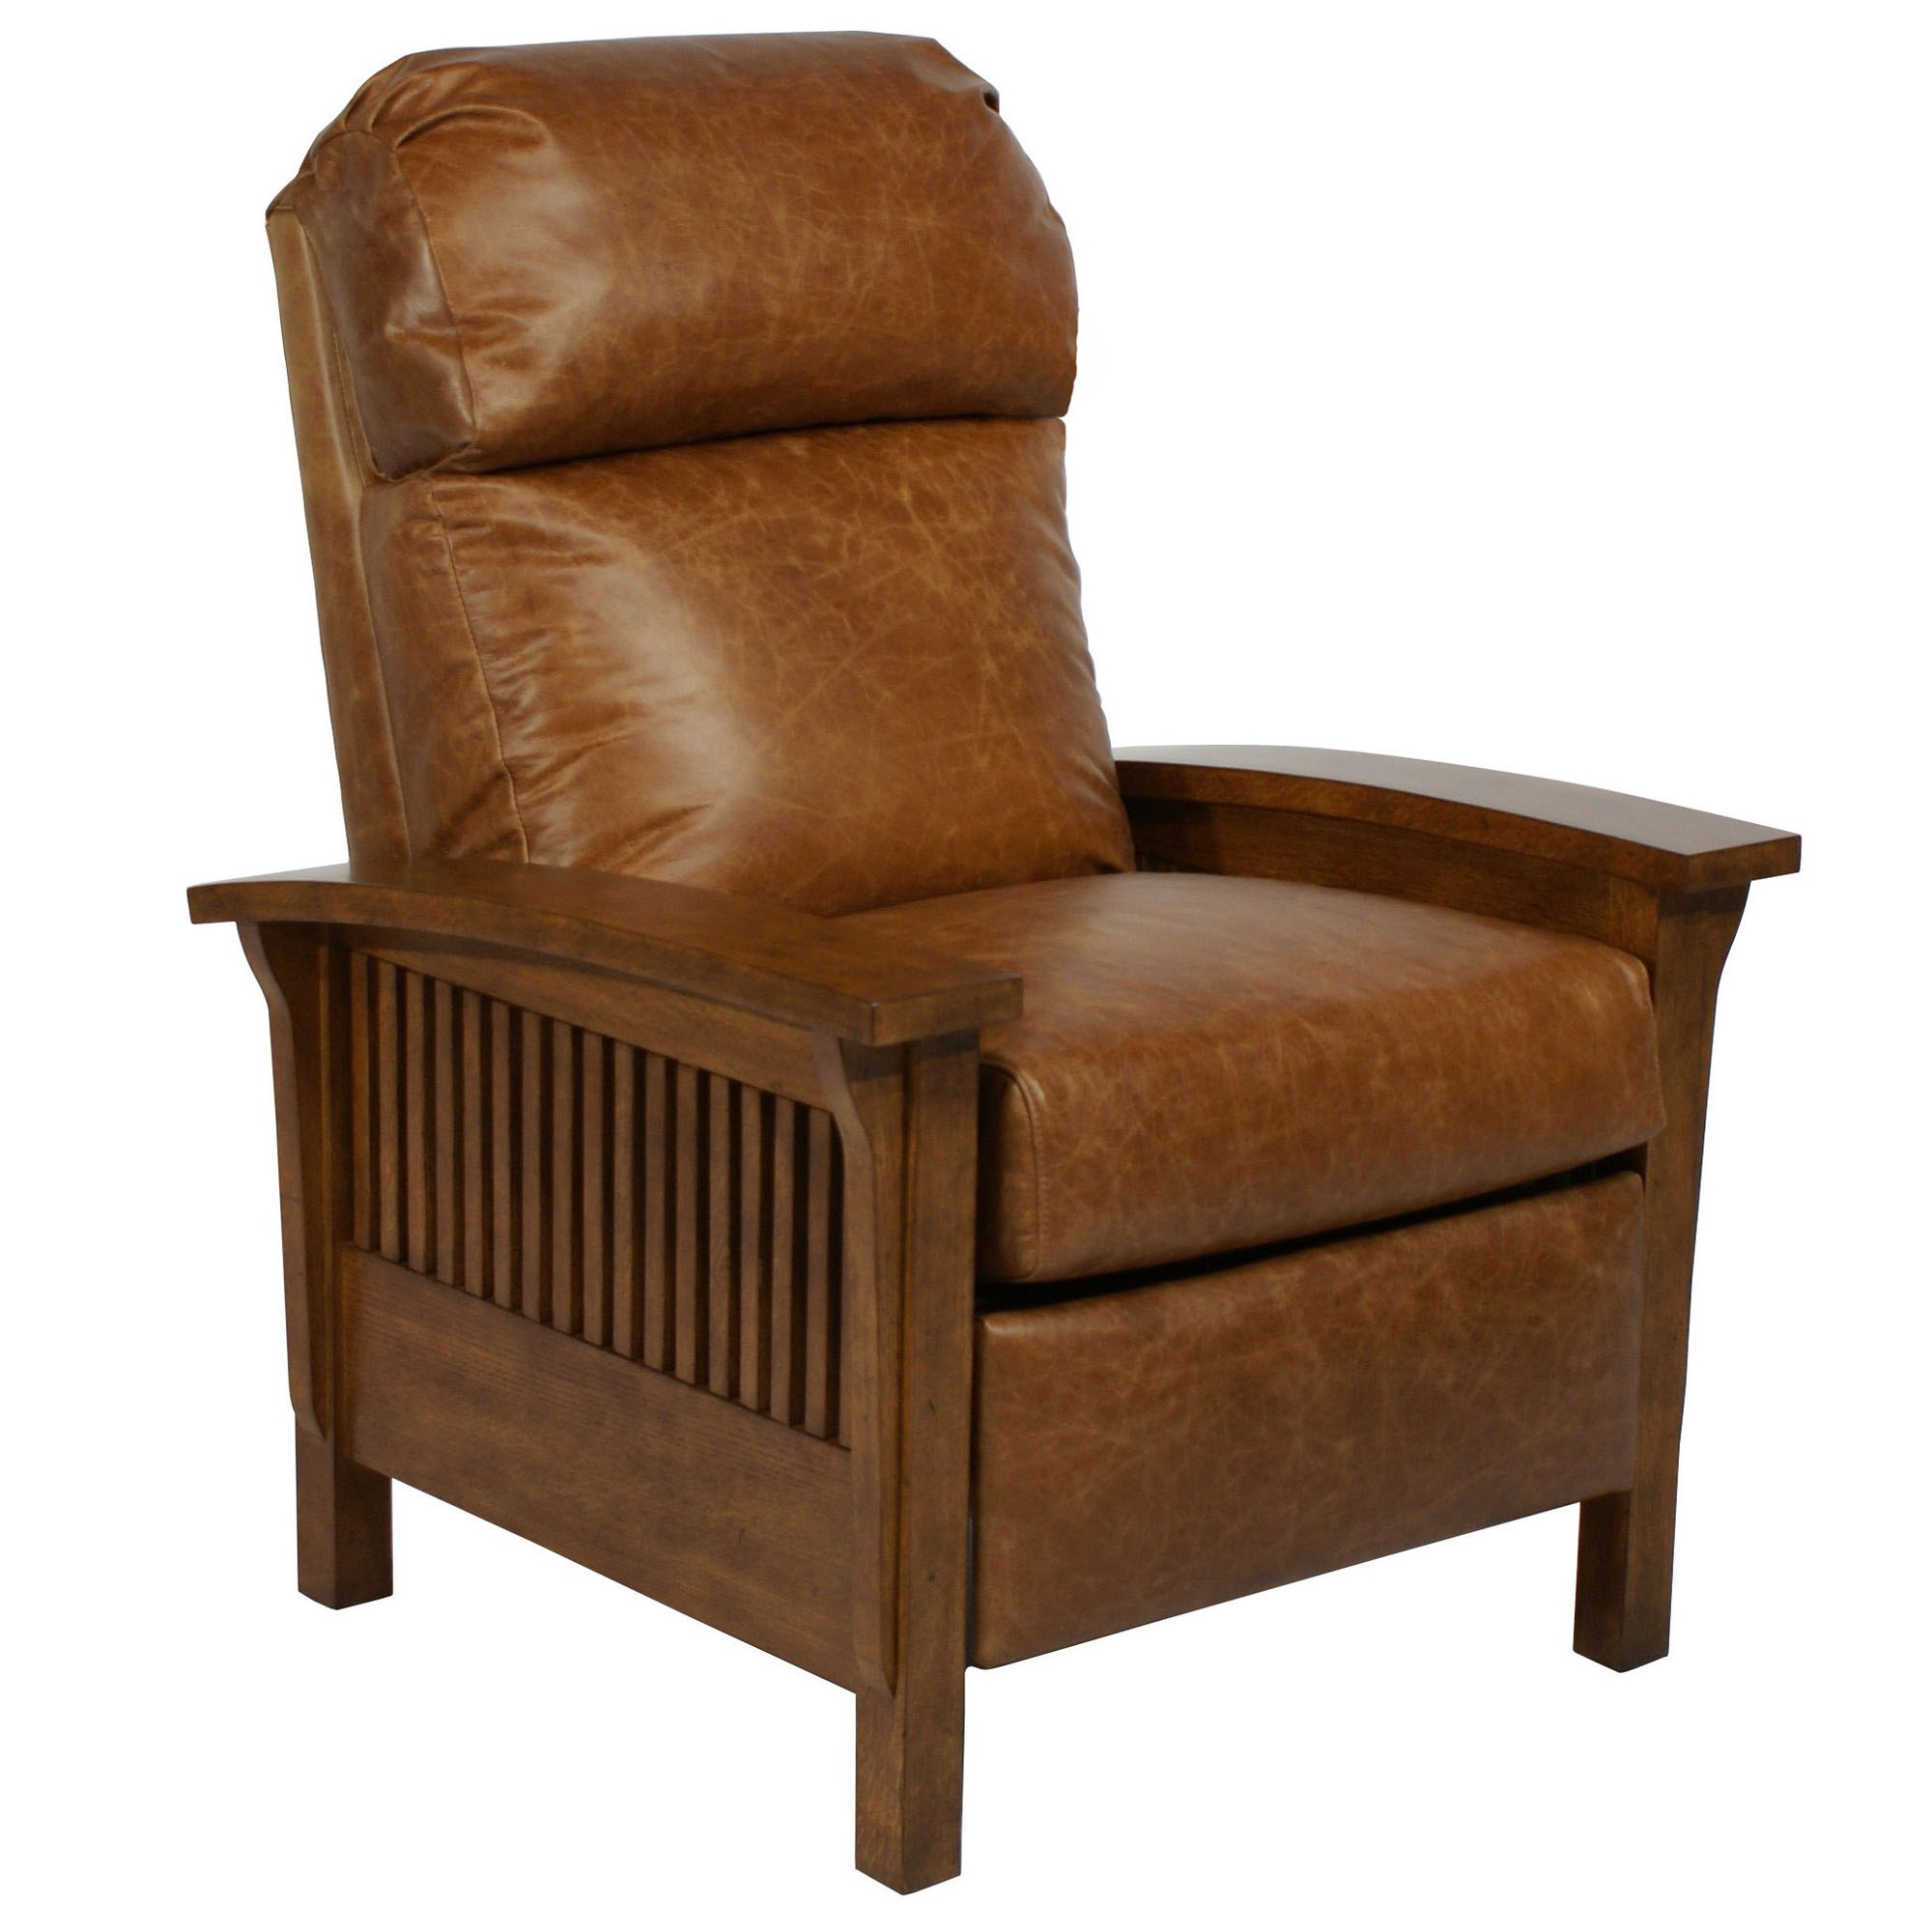 craftsman leather chair barcalounger craftsman ii recliner chair leather 13570 | Barcalounger Craftsman II Chaps%20Saddle